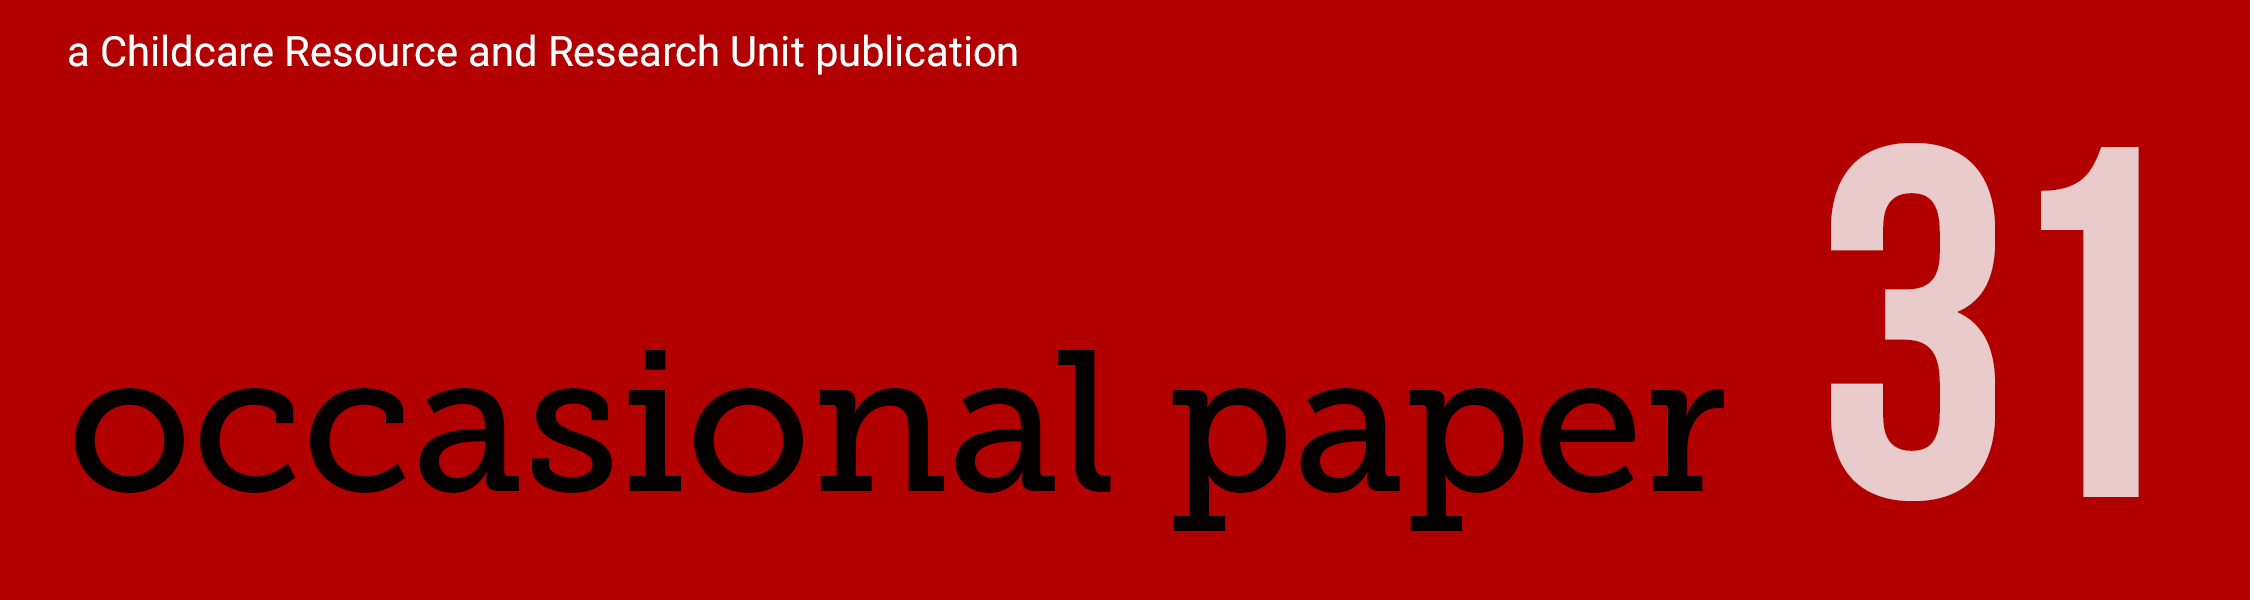 banner for occasional paper 31